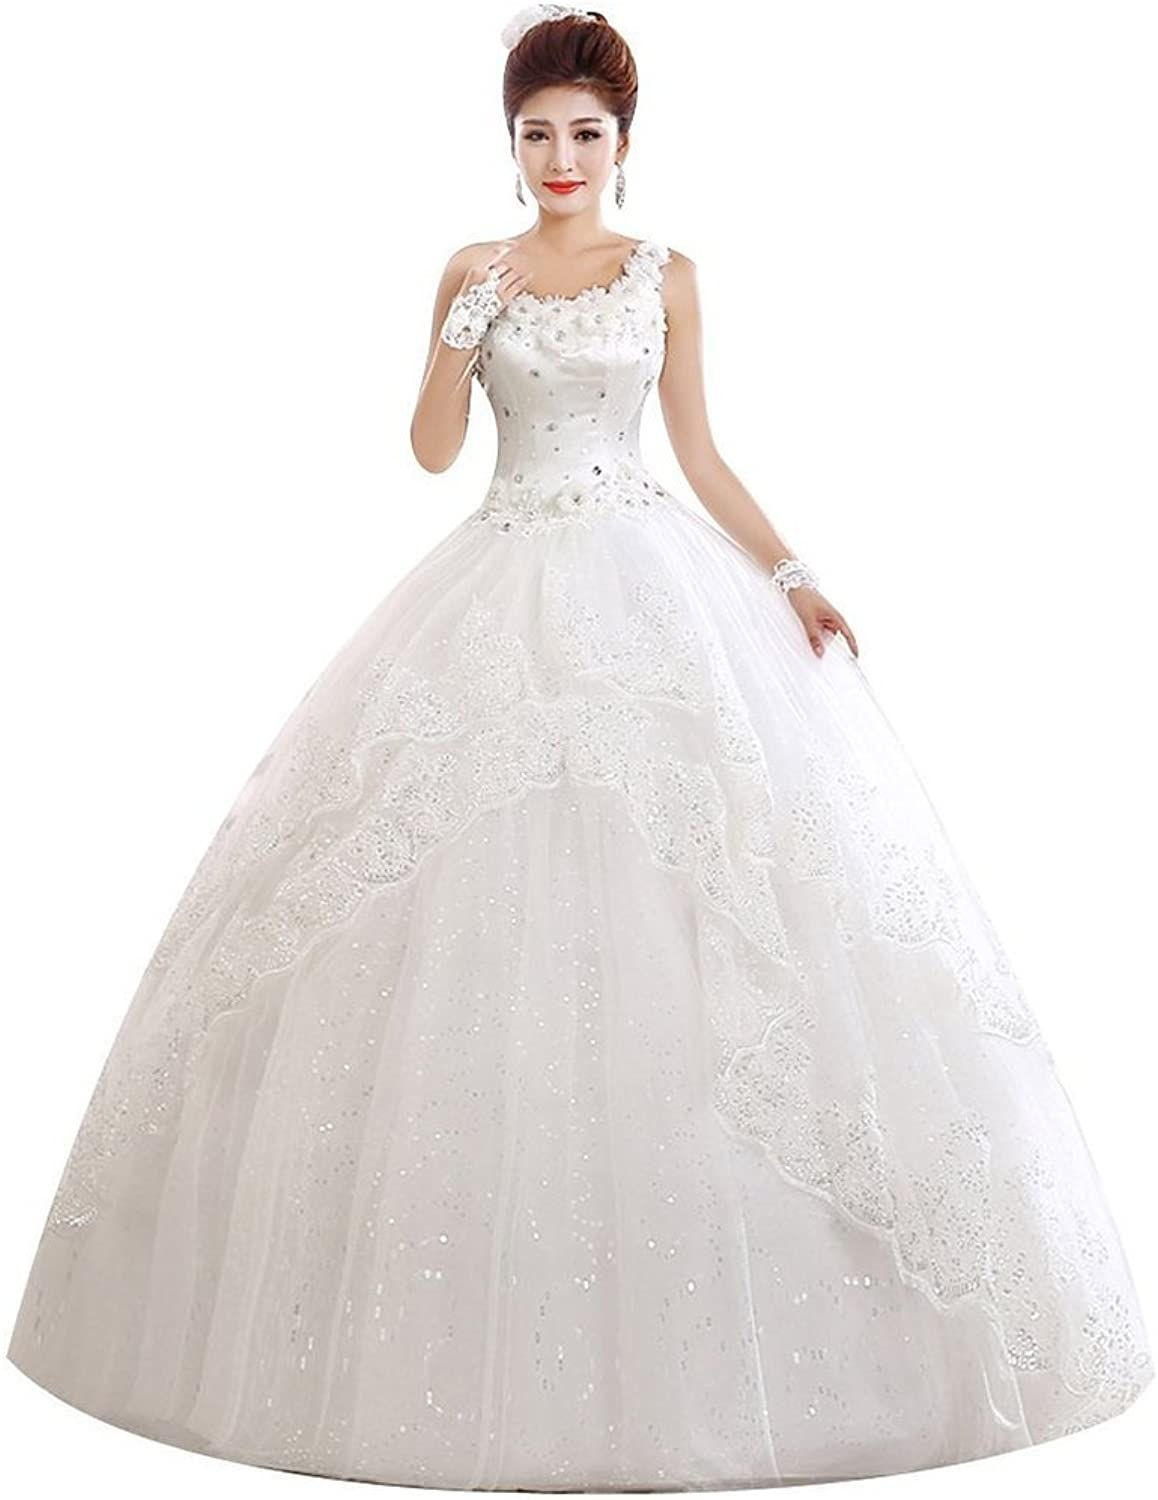 Shanghai Story One Shoulder Sleeveless Brial Gown Wedding Dress